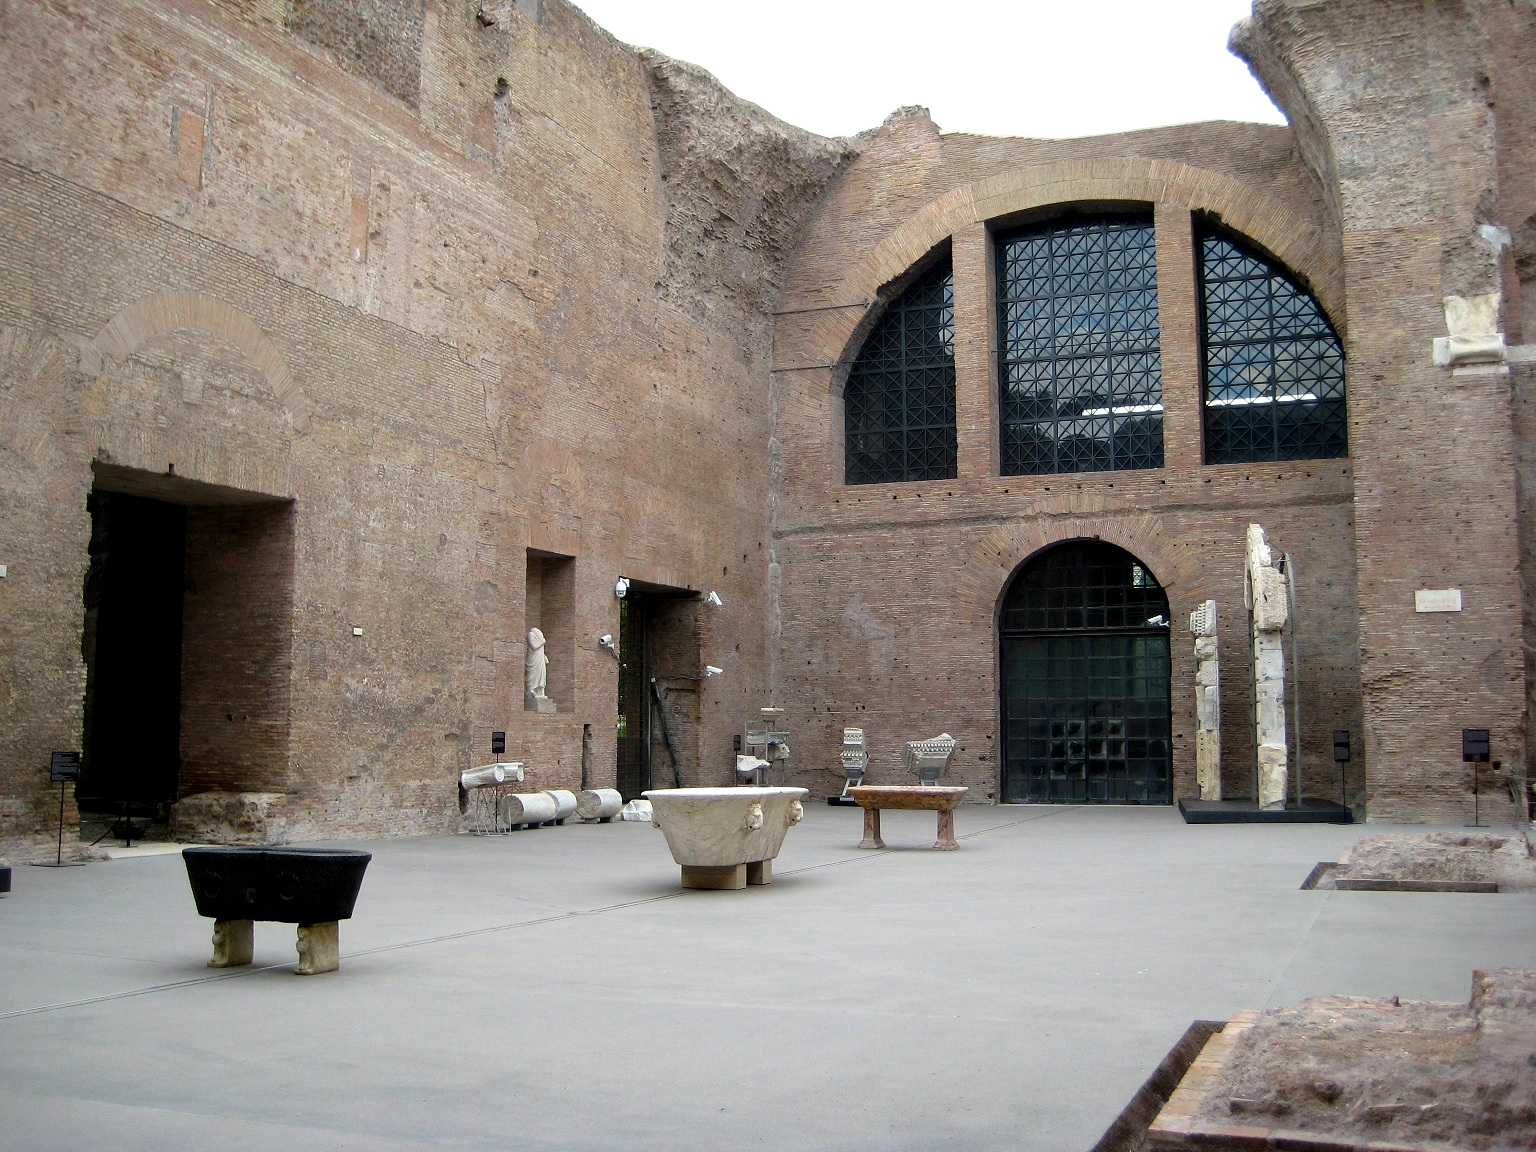 Baths of Diocletian